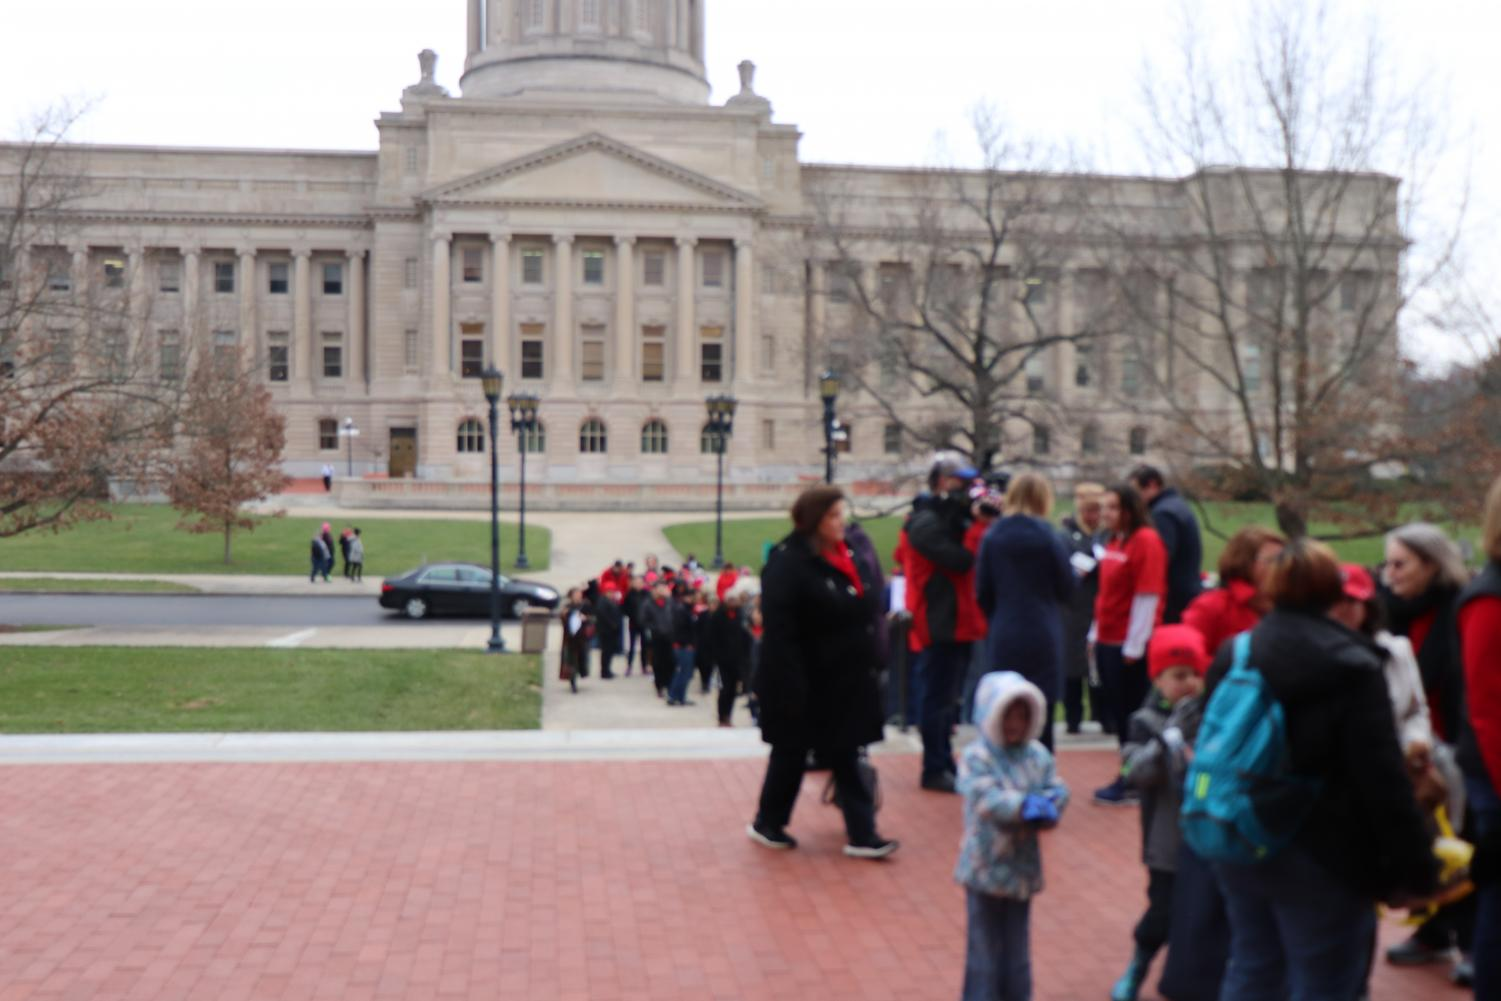 RED WAVE - Teachers line up outside the annex building of the capitol in Frankfurt, Kentucky to protest HB 525. Photo by Sylvia Cassidy